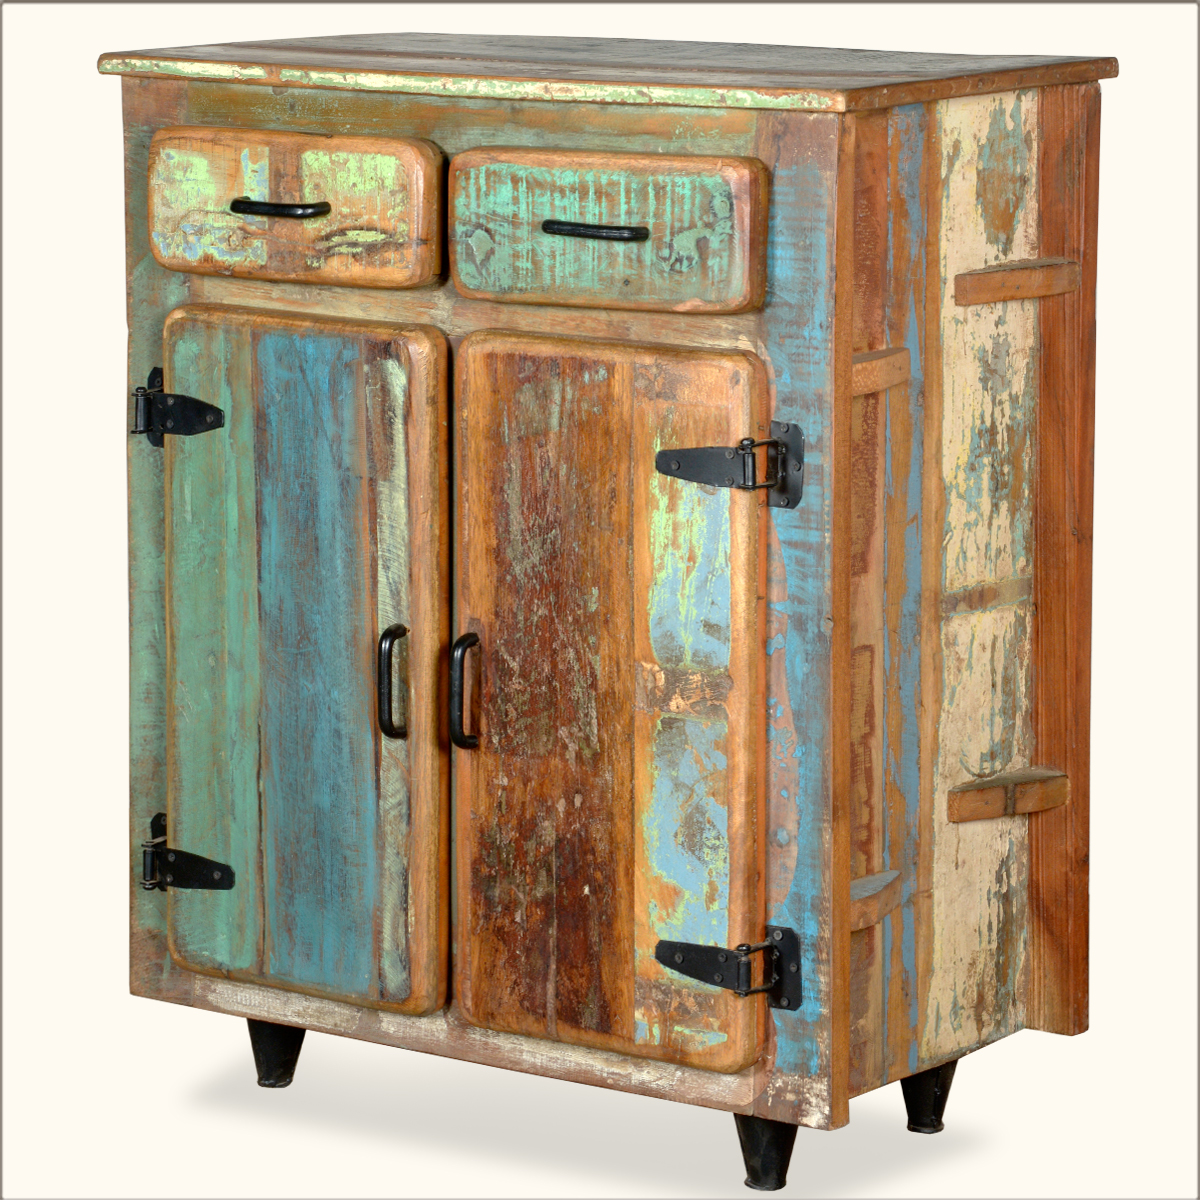 Reclaimed Old Wood Rustic Kitchen Utility Storage Cabinet